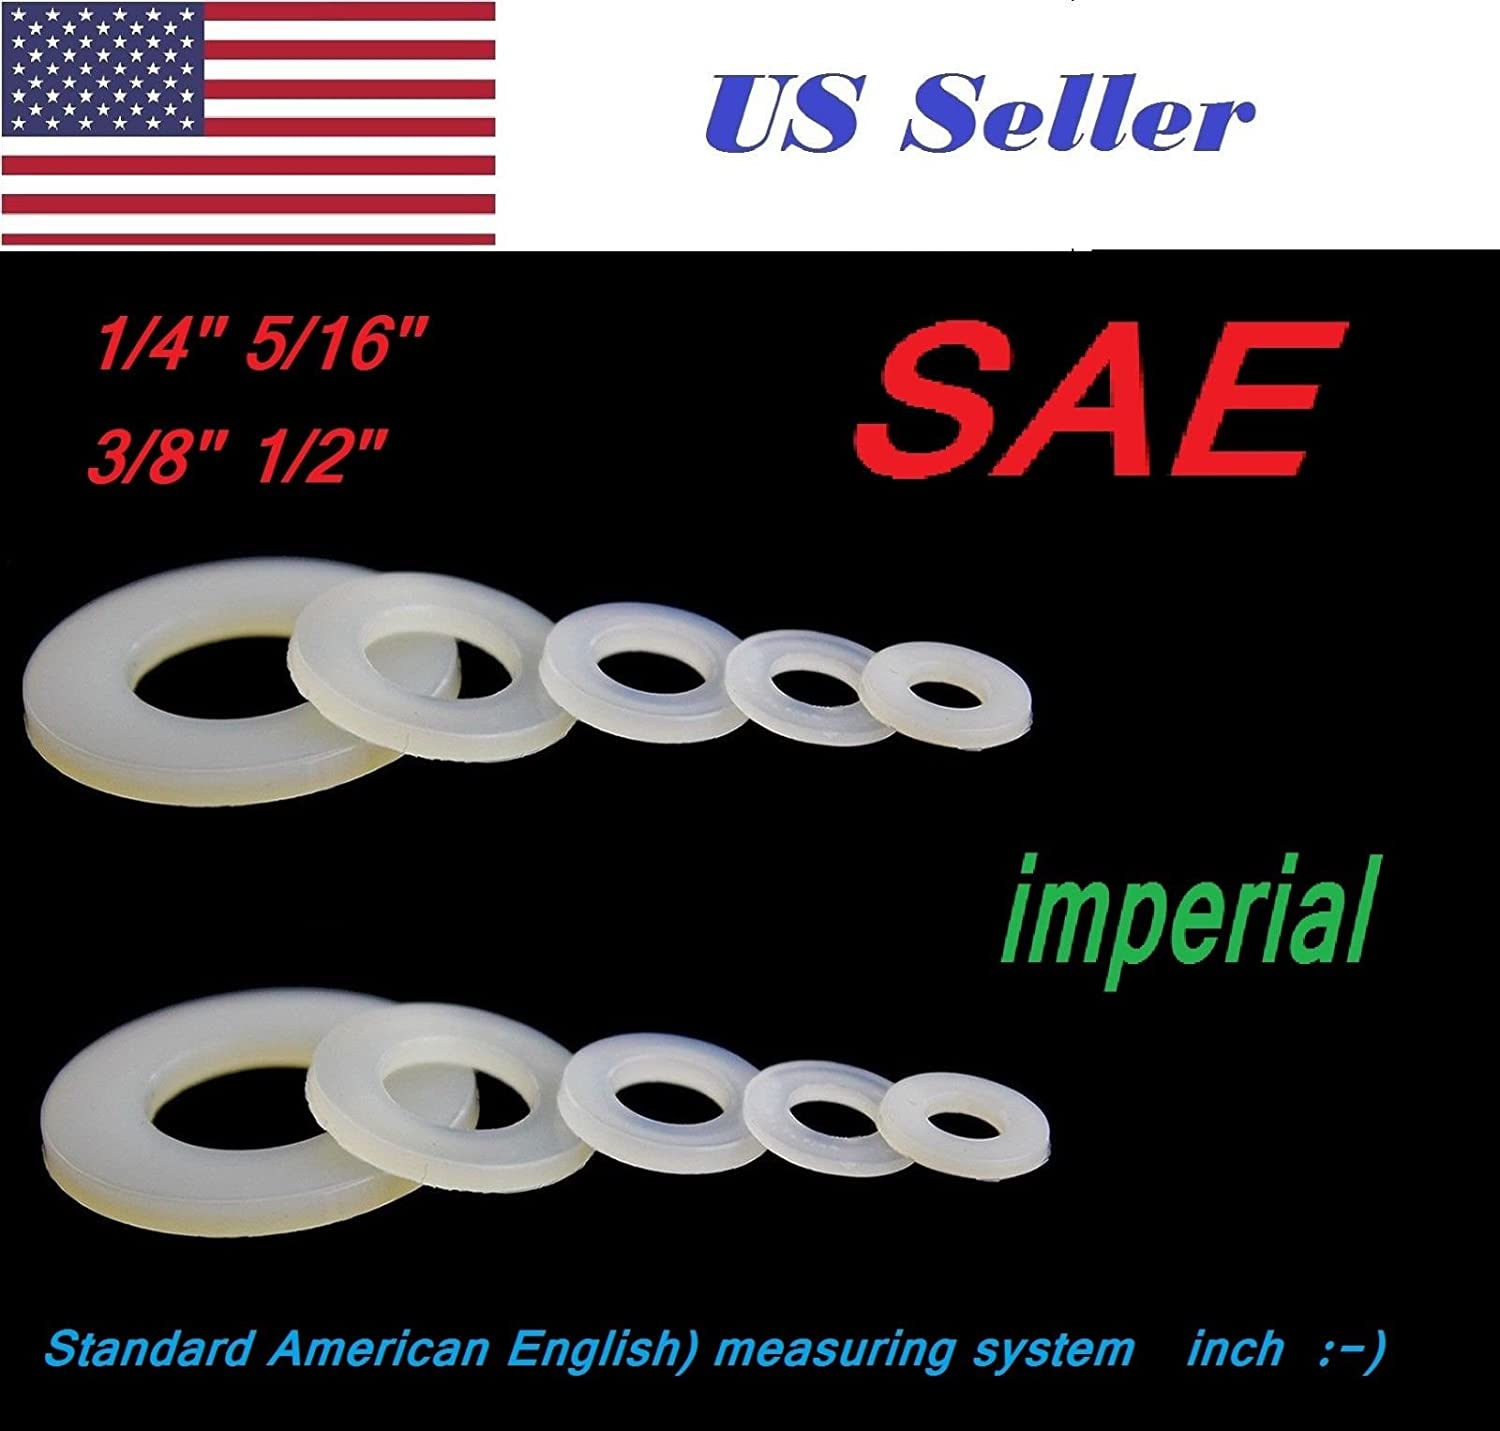 Plain Finish SAE Imperial Inch White Plastic Nylon Flat Washer Spacer Off-White #21W 1//2 OD X 0.257 ID X 0.032 Thickness Pack of 100